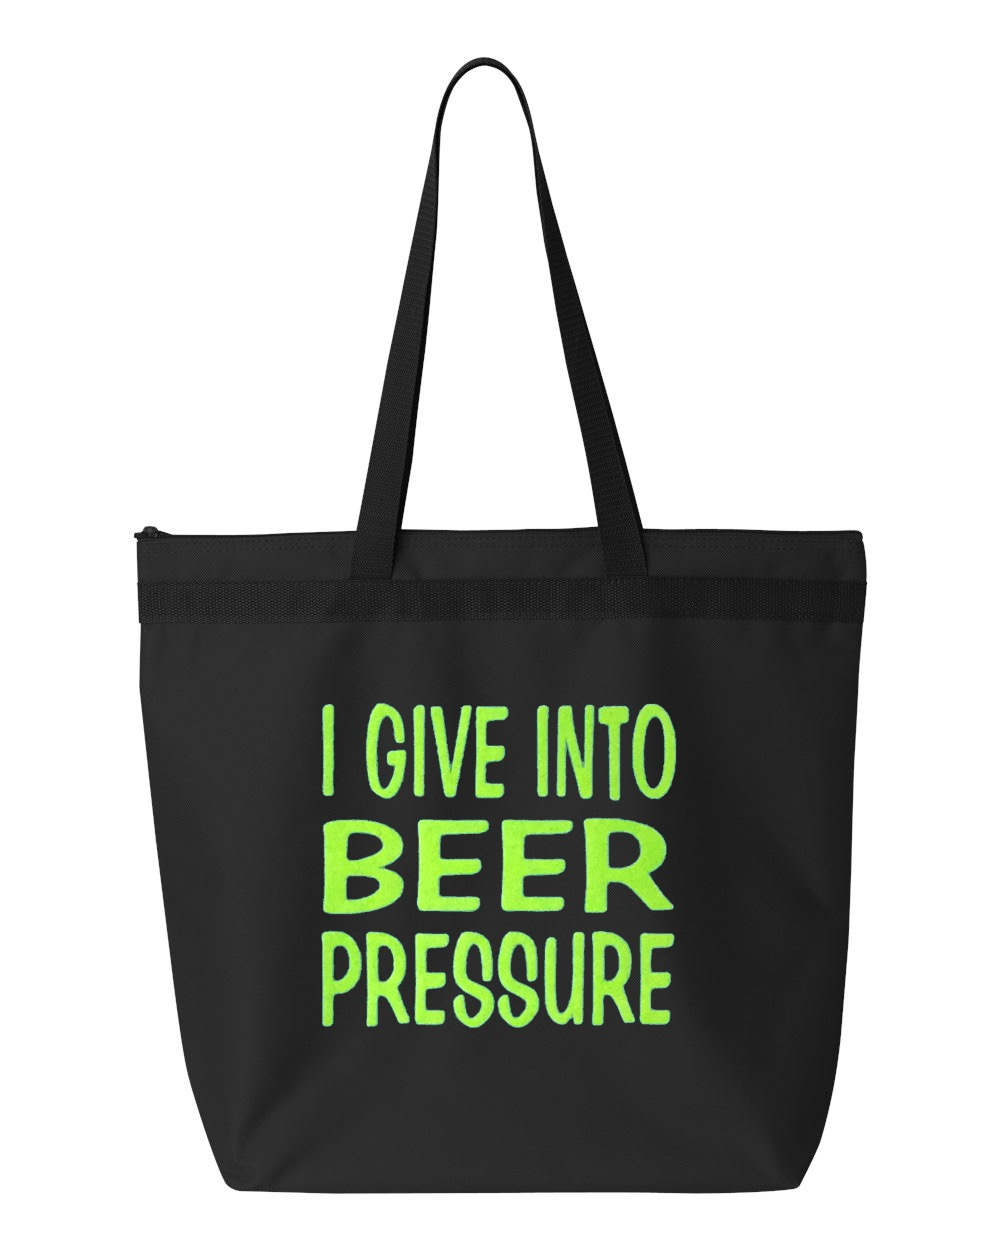 I Give Into Beer Pressure.  Zipper Tote Bag